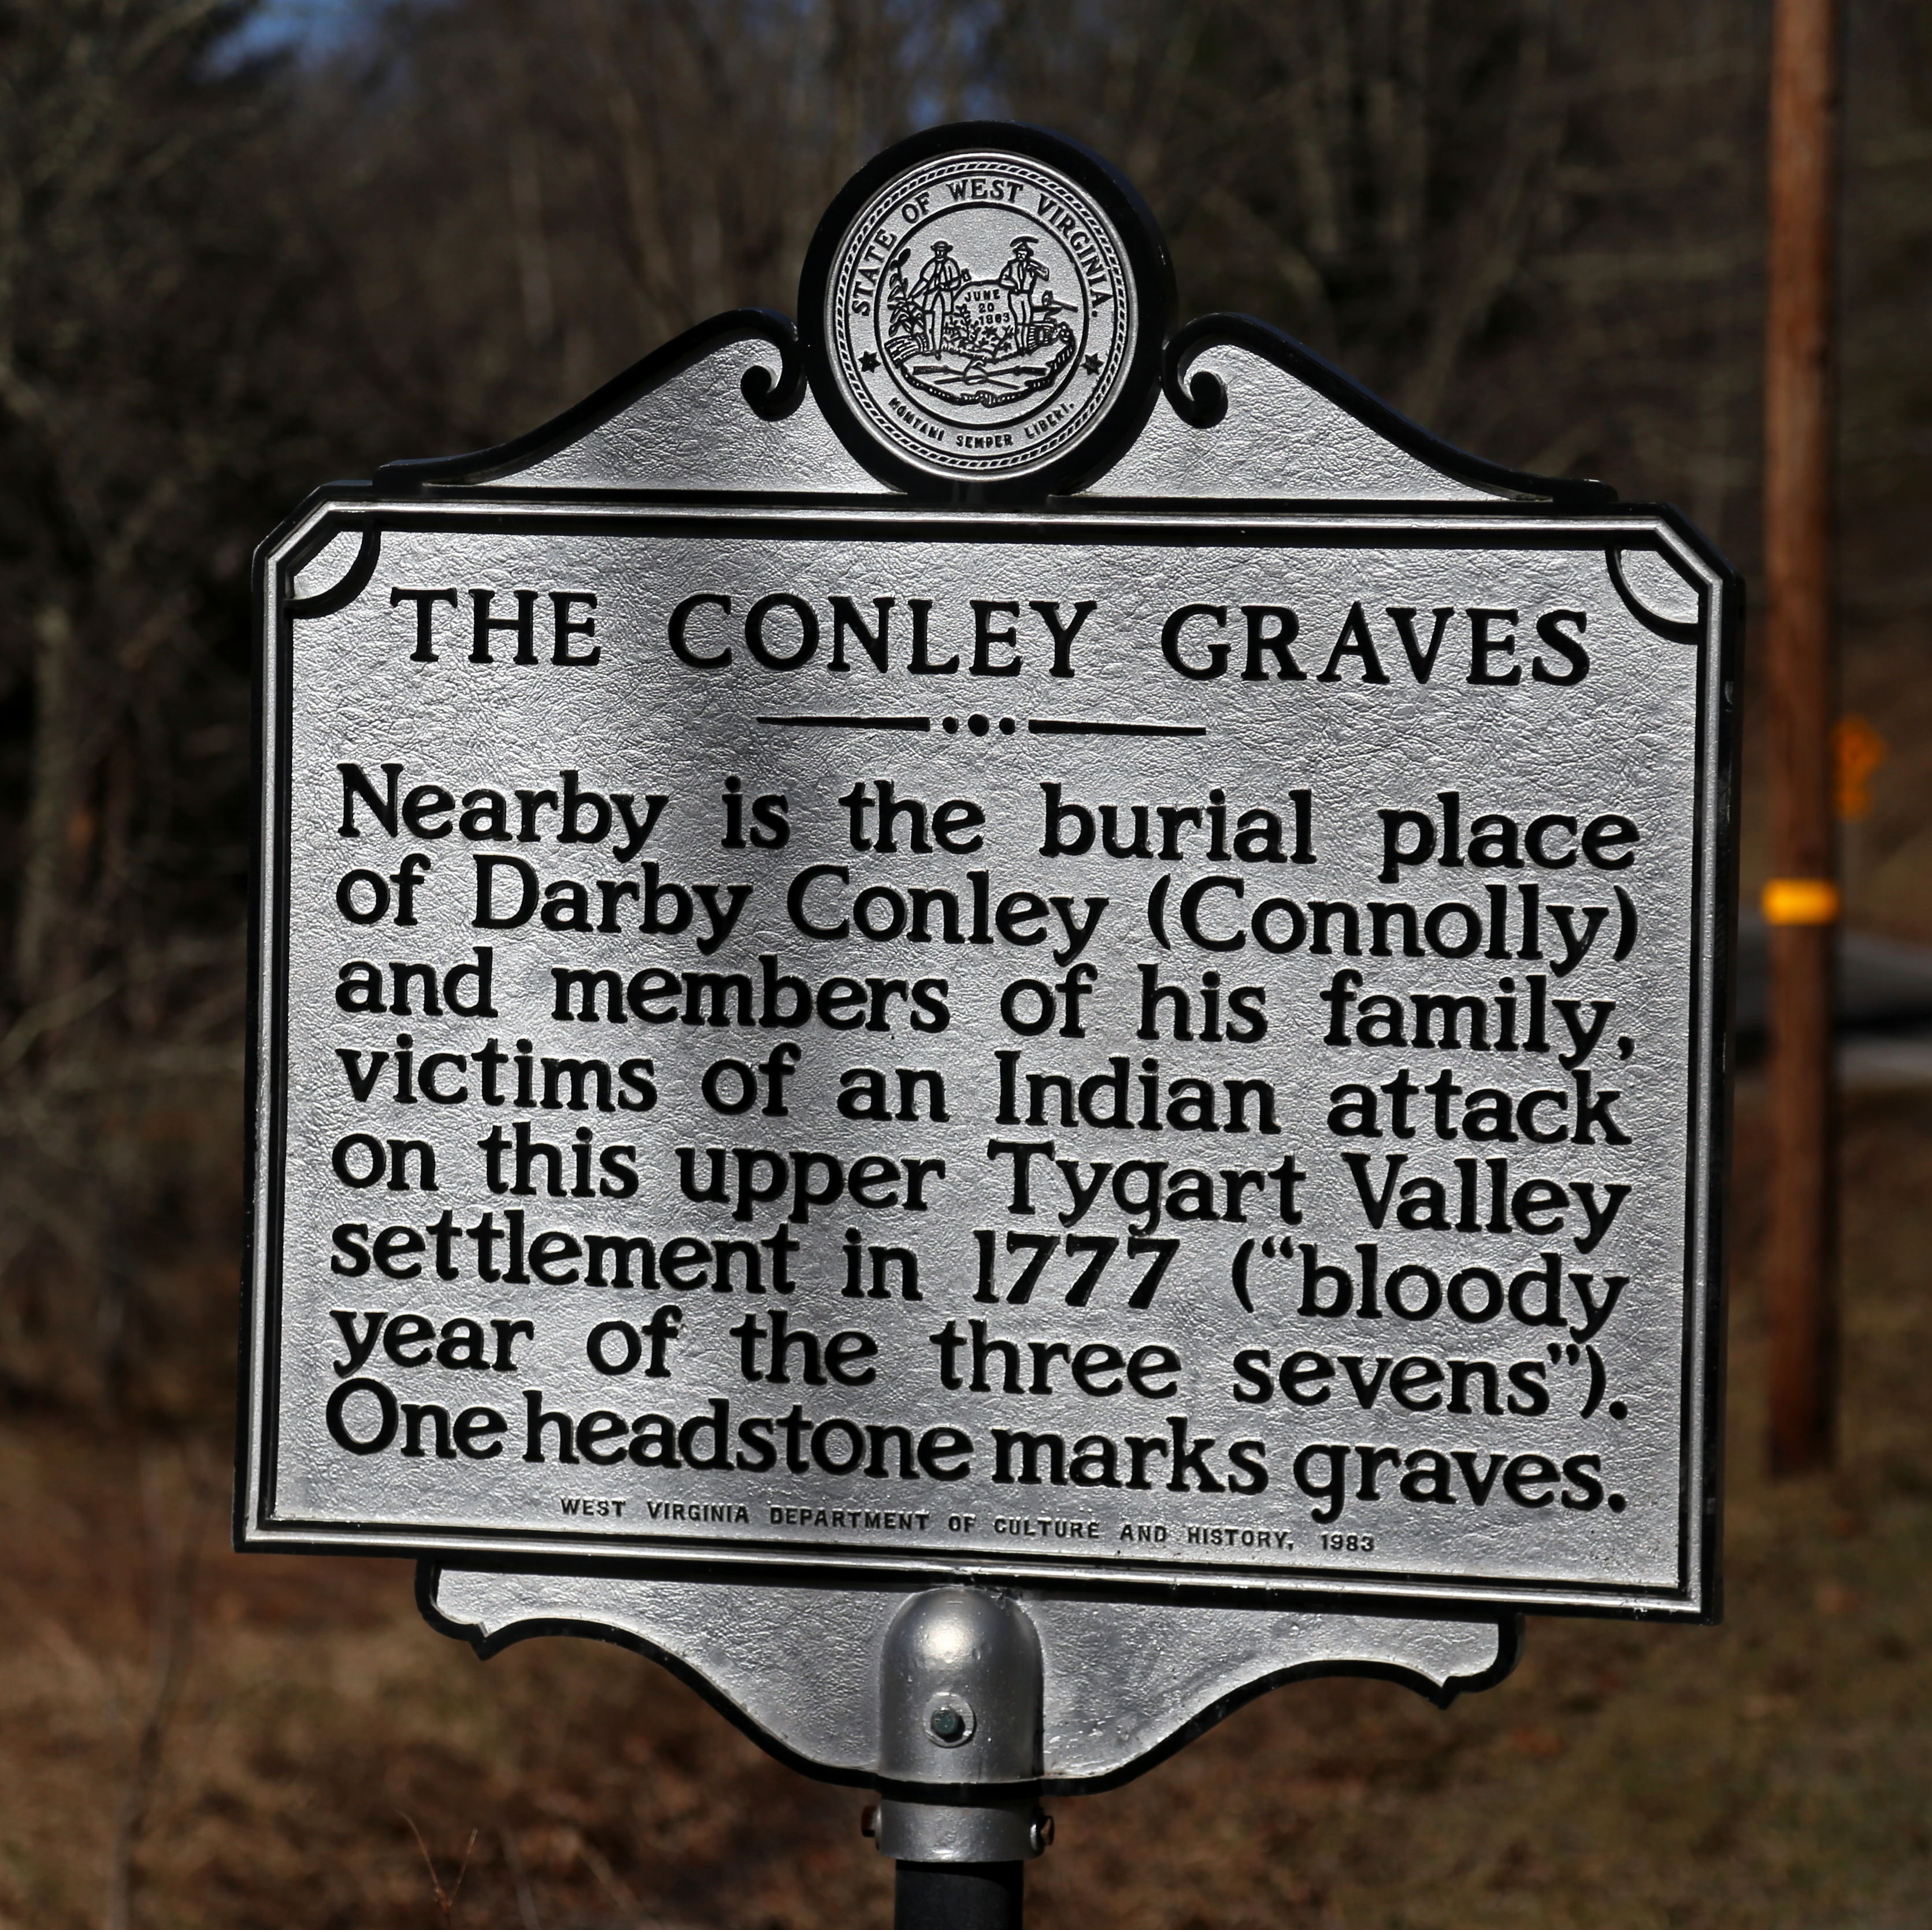 The Conley Graves Marker